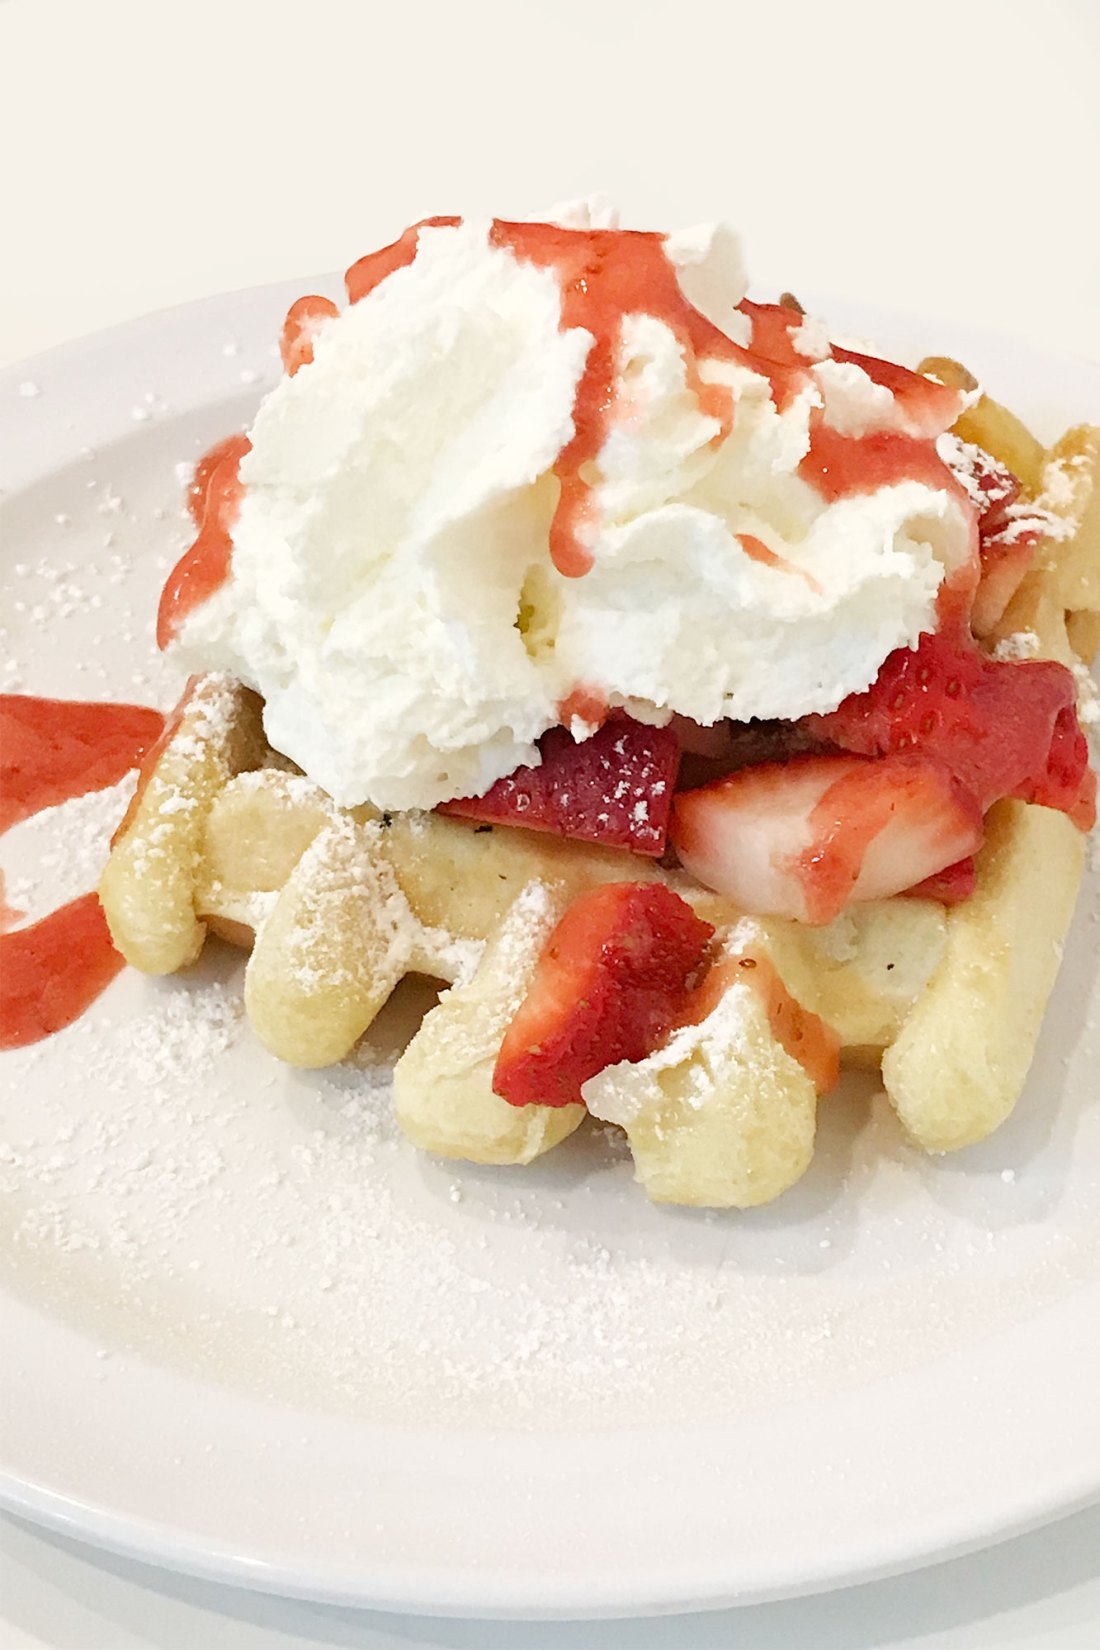 Liege waffle with strawberries and whipped cream one of the things we ate in Seattle